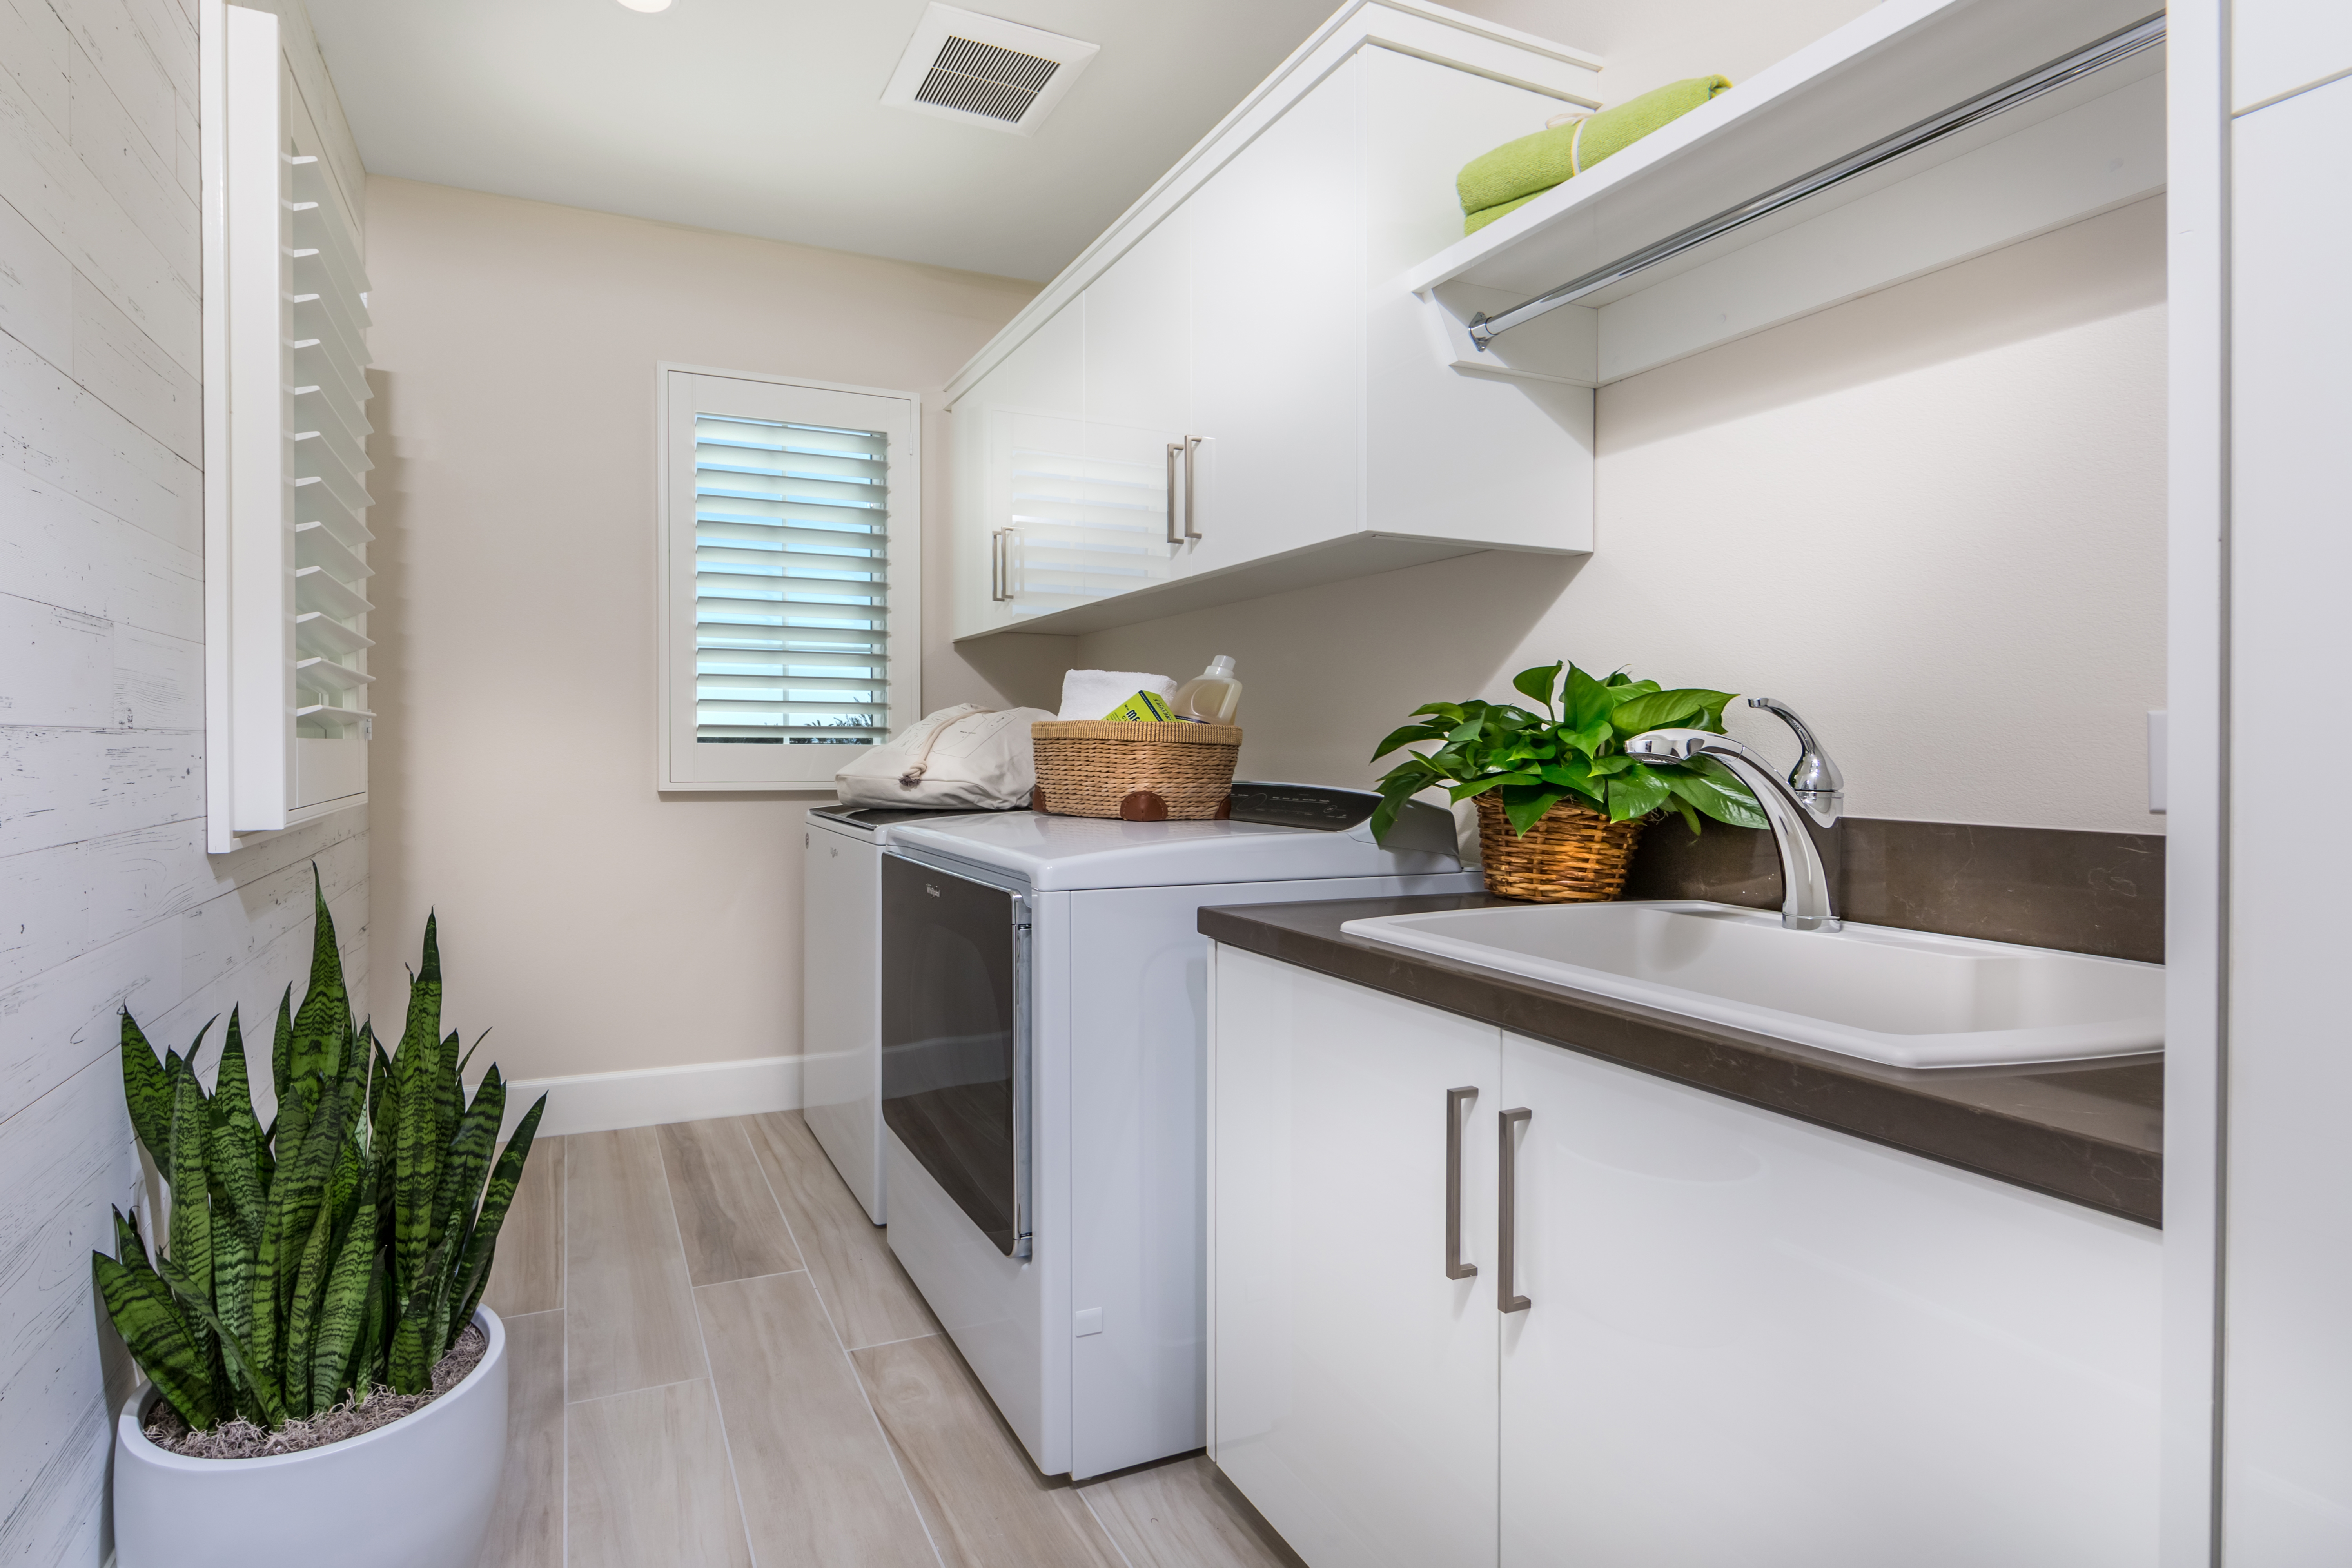 Laundry Room at Como Residence 1 in Irvine